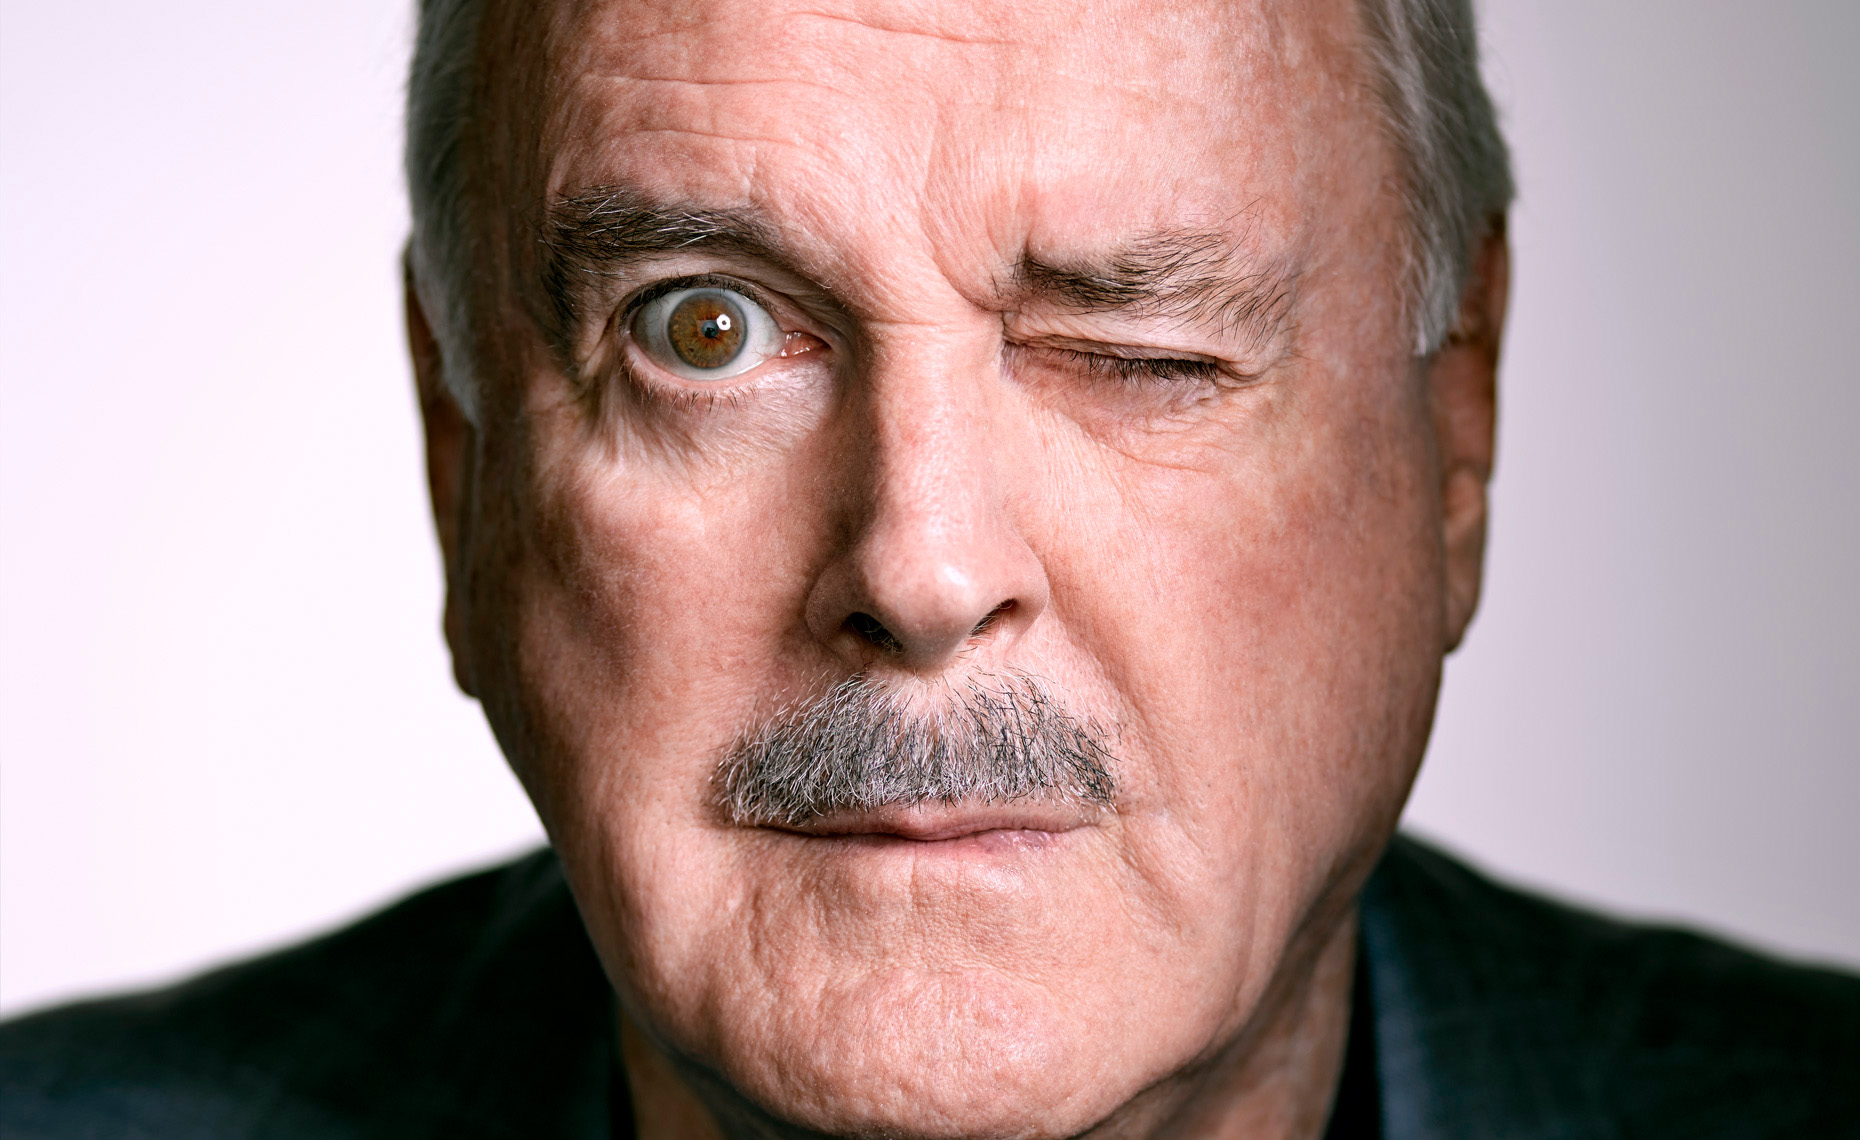 john_cleese_eye_horiz